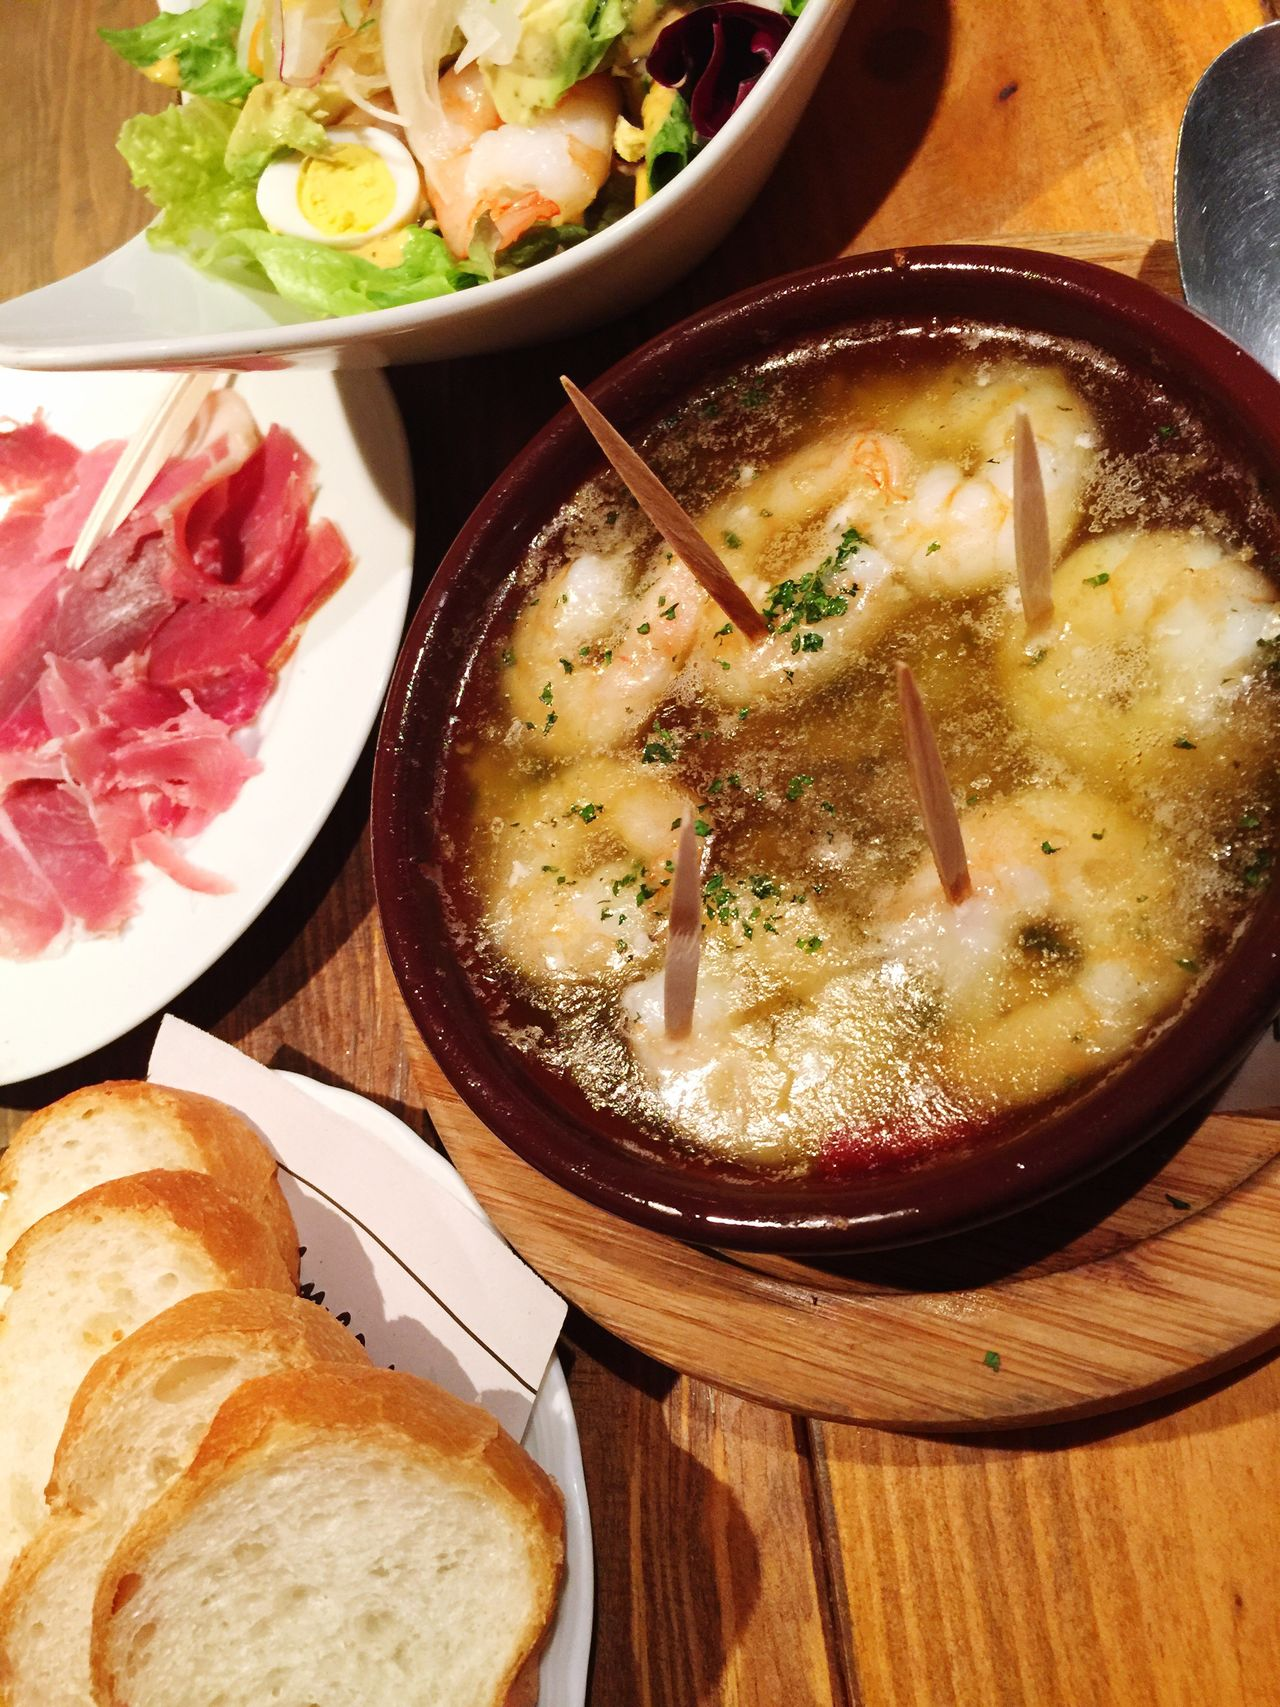 SPAIN SPAIN Val  Food And Drink Food Table Serving Size Indoors  Meat Bowl Freshness Healthy Eating Ready-to-eat Plate Soup No People Pork Close-up Day Eye Edgy